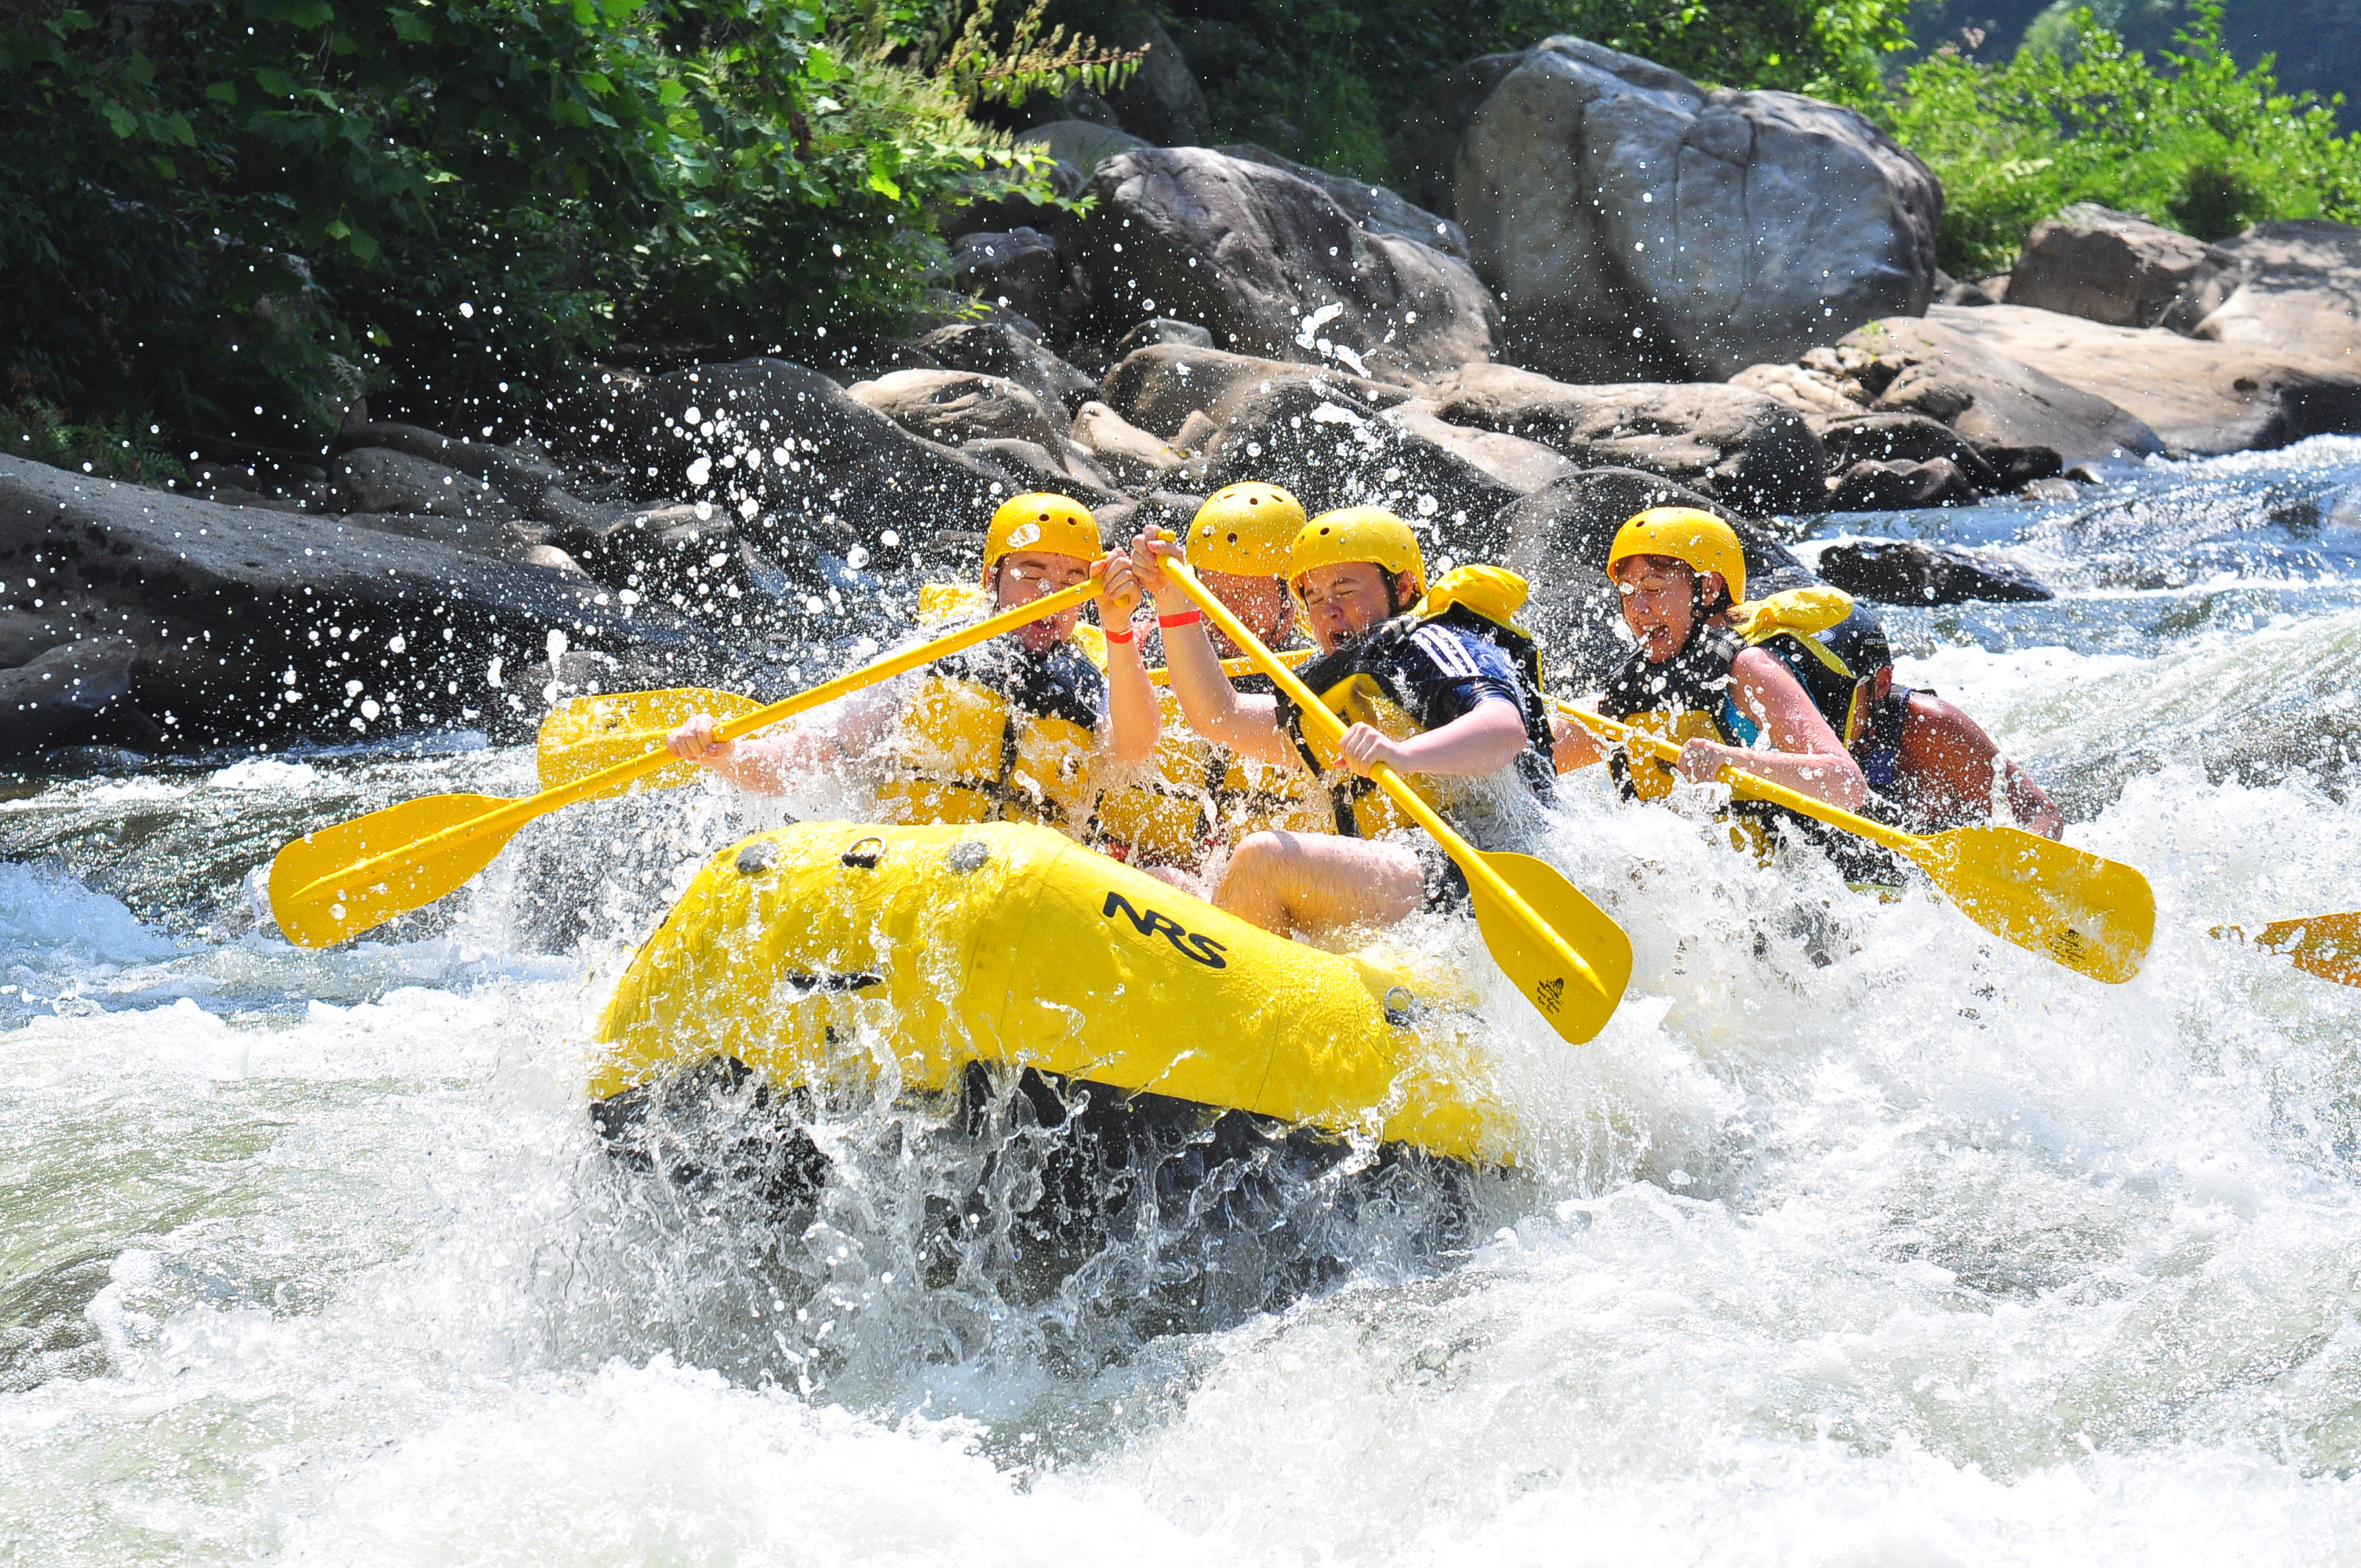 An Insider's Look at Choosing the BEST River for White Water Rafting! -  Laurel Highlands River Tours and Outdoor Center